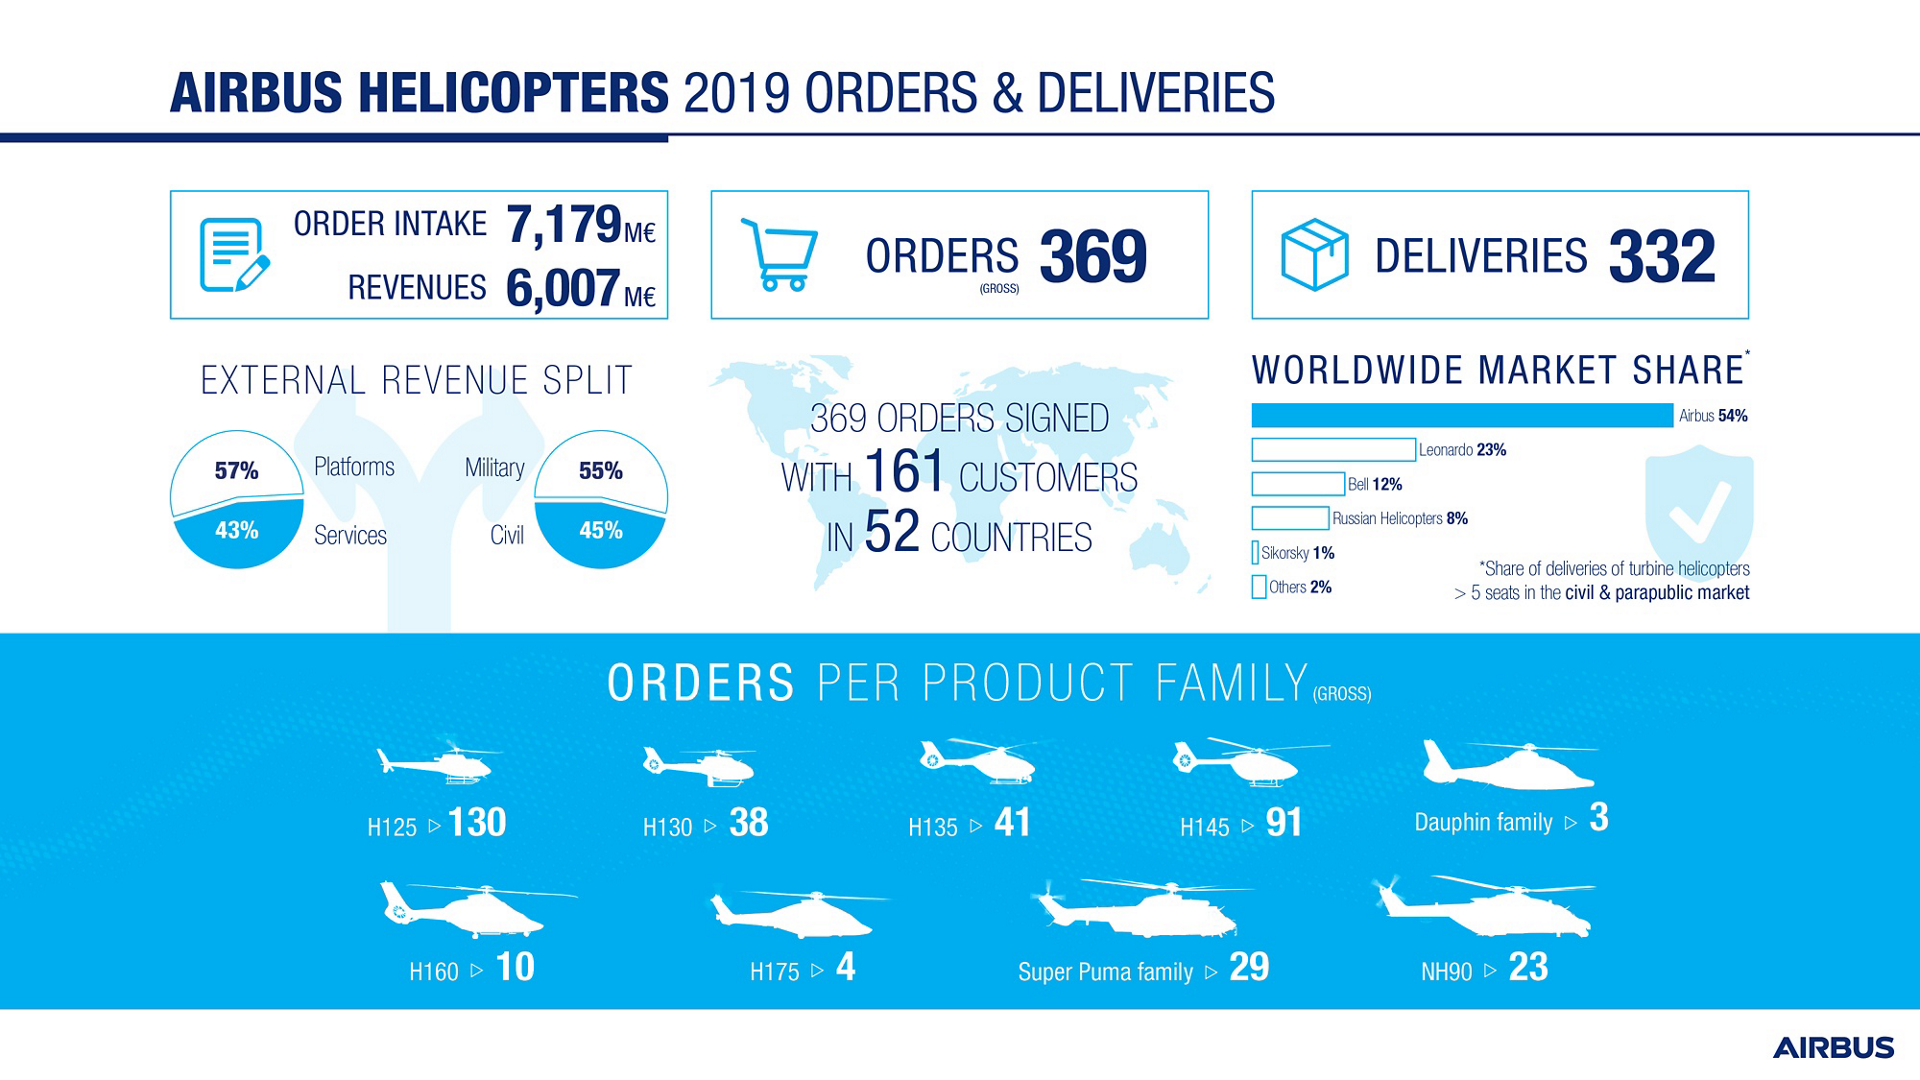 Airbus Helicopters 2019 Orders And Deliveries